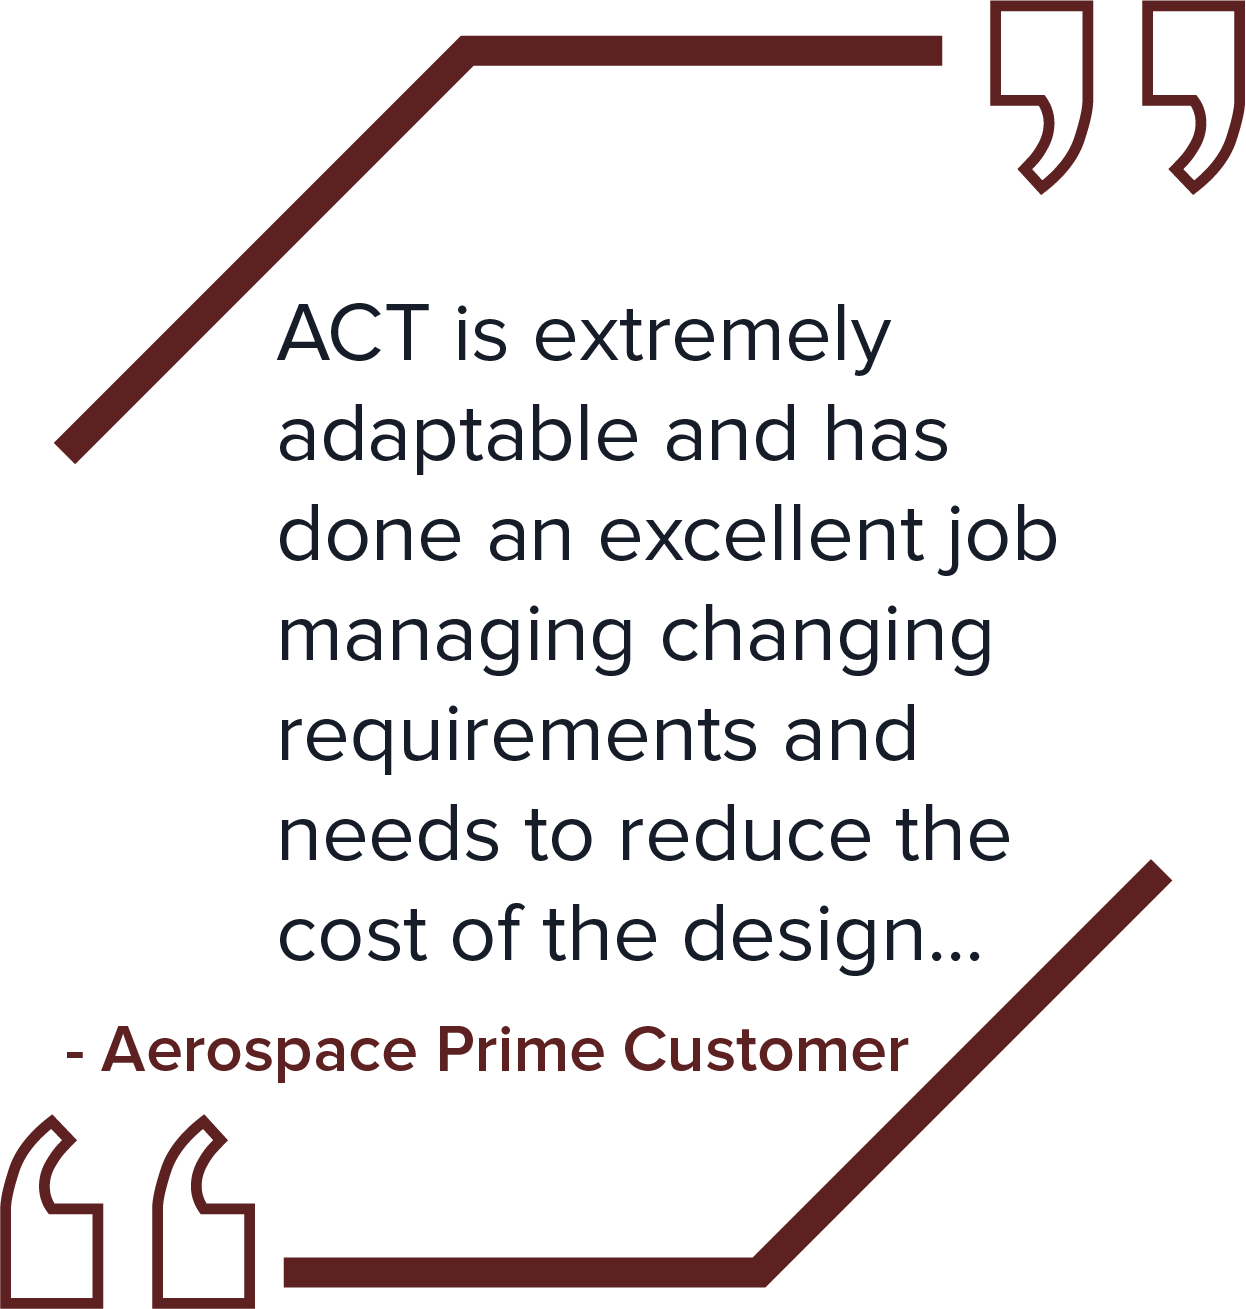 ACT is extremely adaptable and has done an excellent job managing changing requirements and needs to reduce the cost of the design...